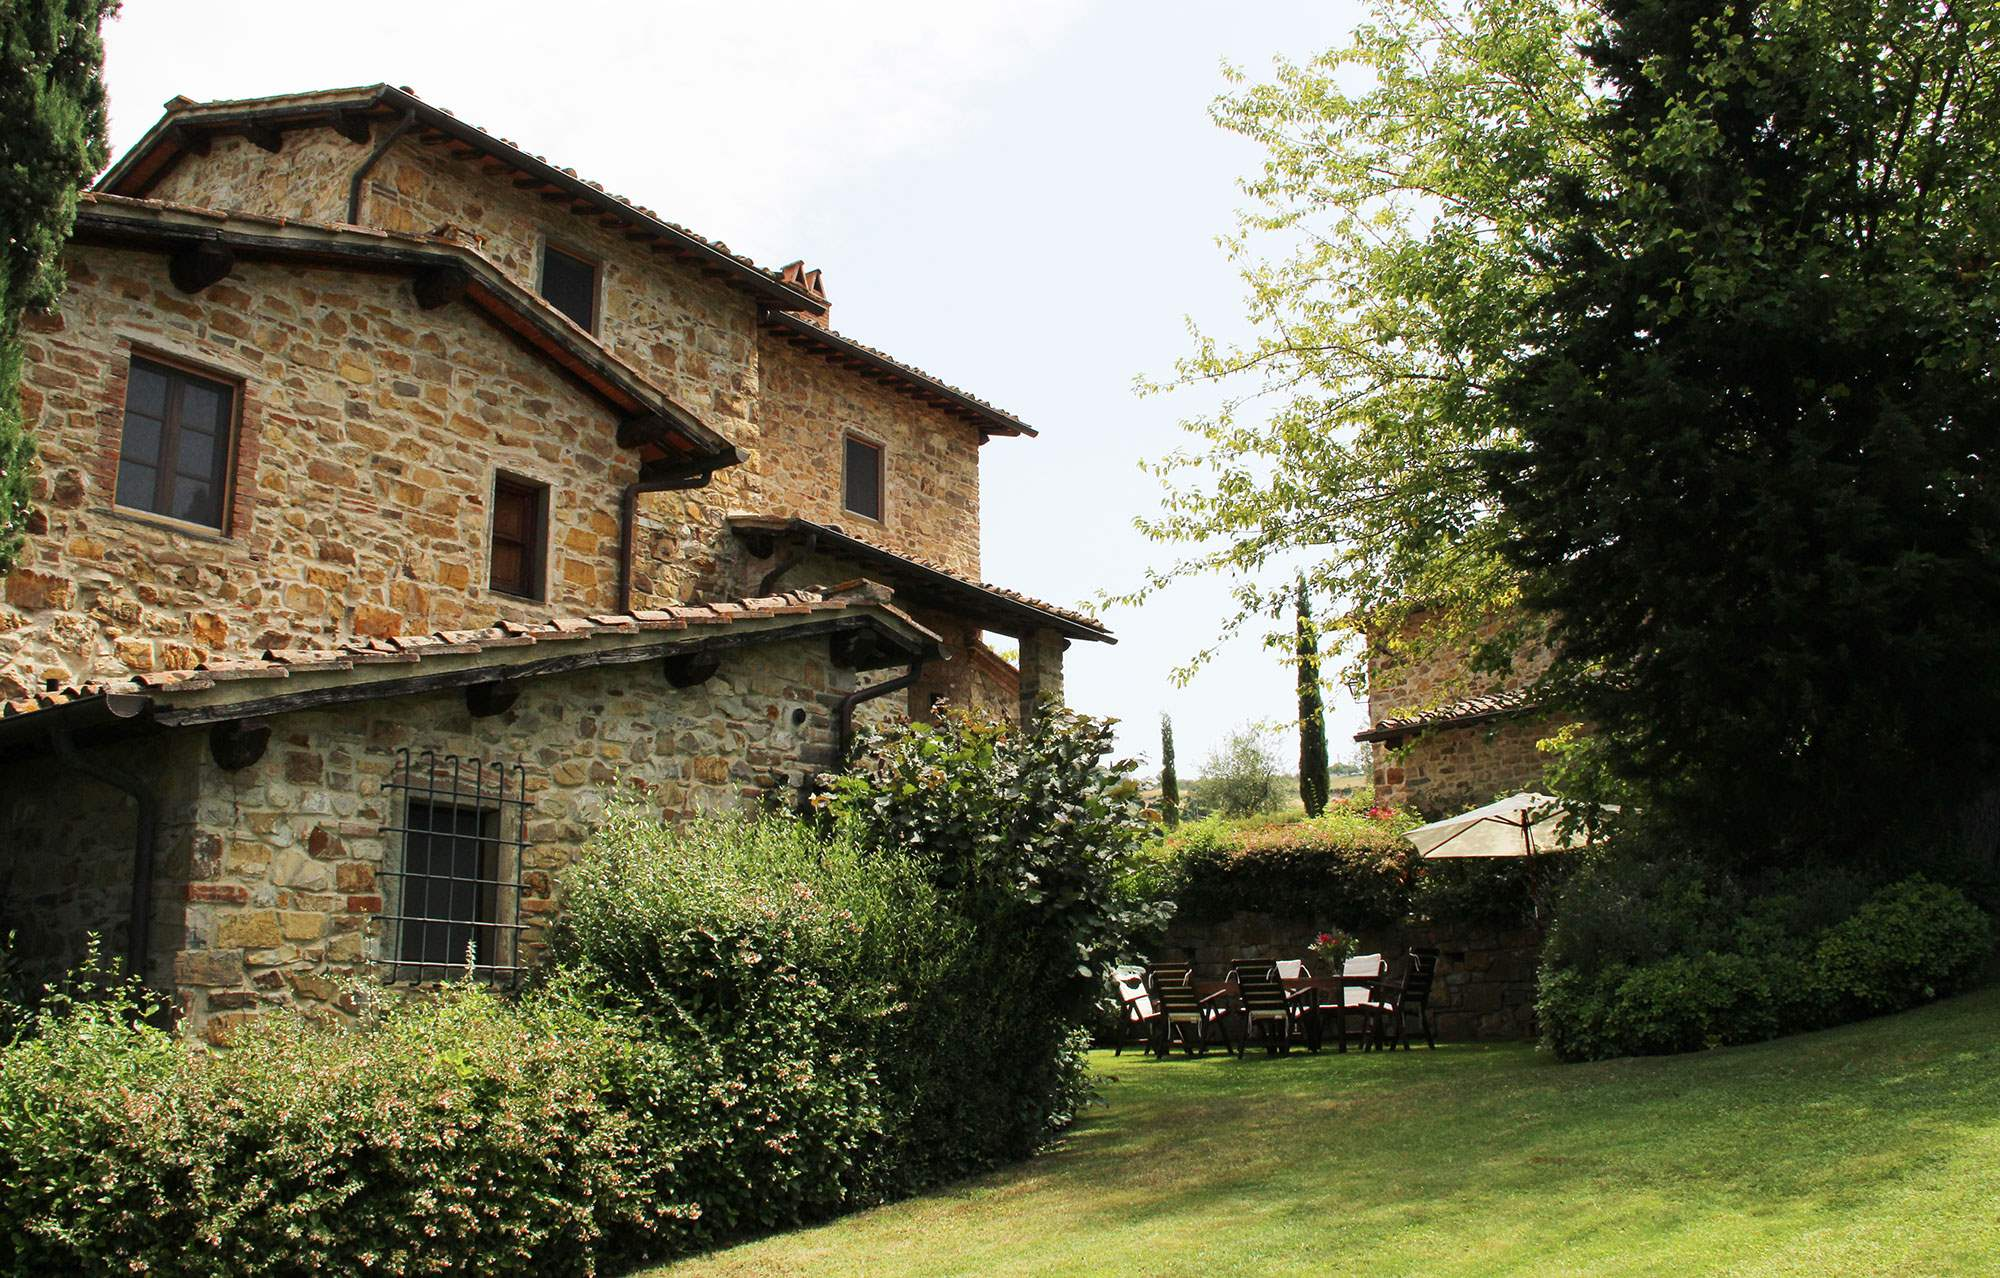 Casa Ferruzzi 2, 3 bedroom apartment in Chianti & Countryside, Tuscany Photo #1